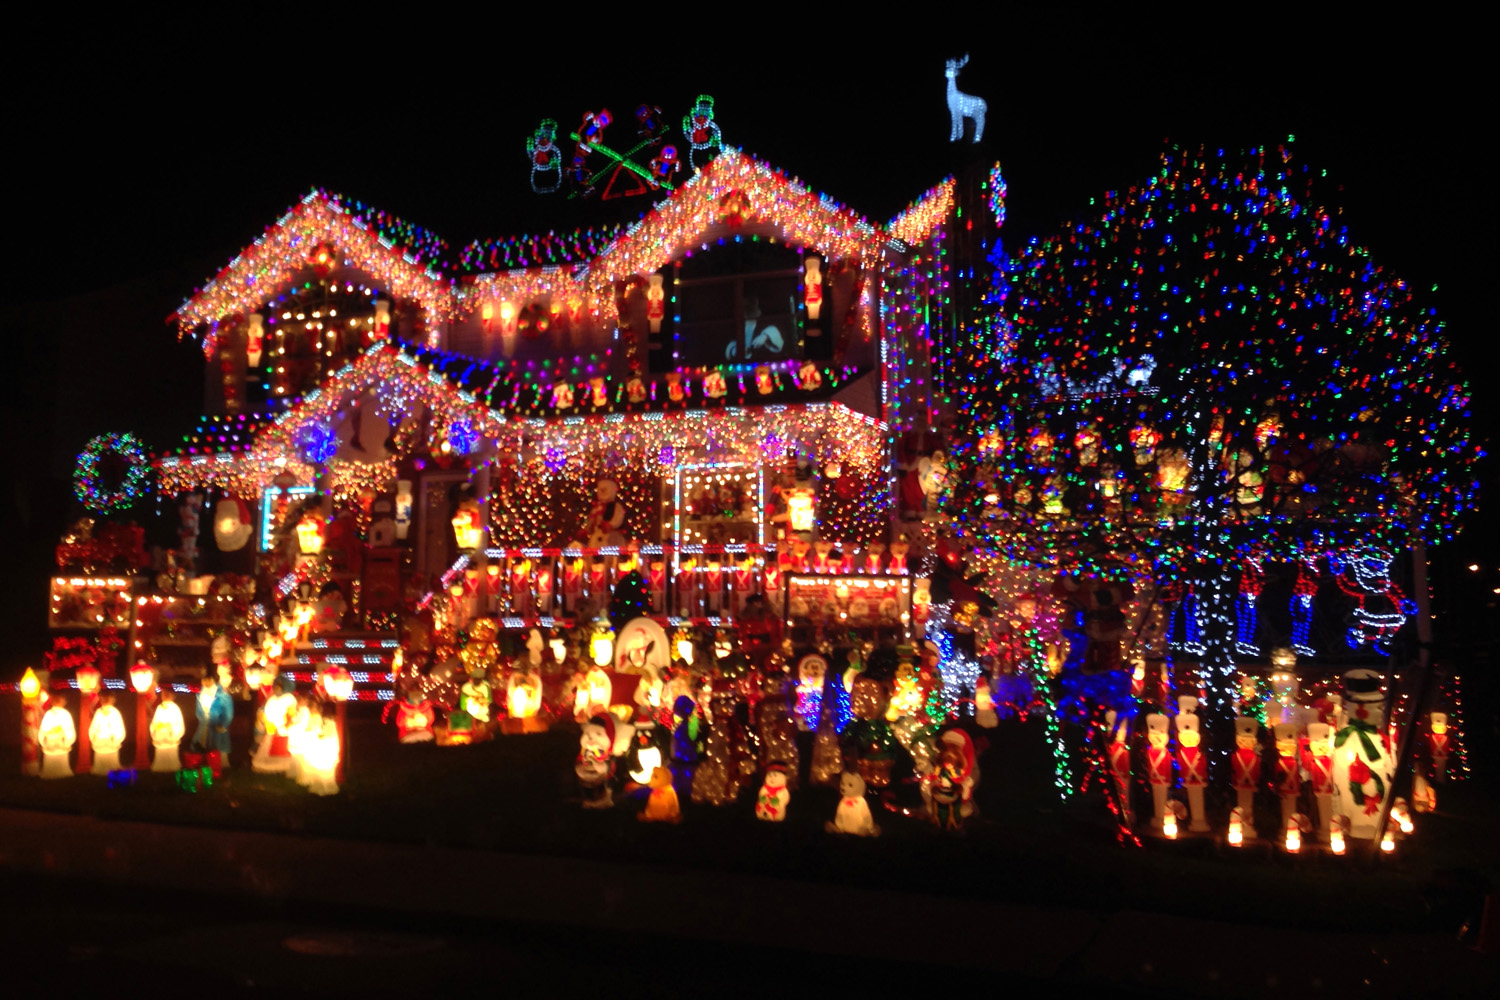 Christmas lights in a minute abidan paul shah for Best christmas decorations